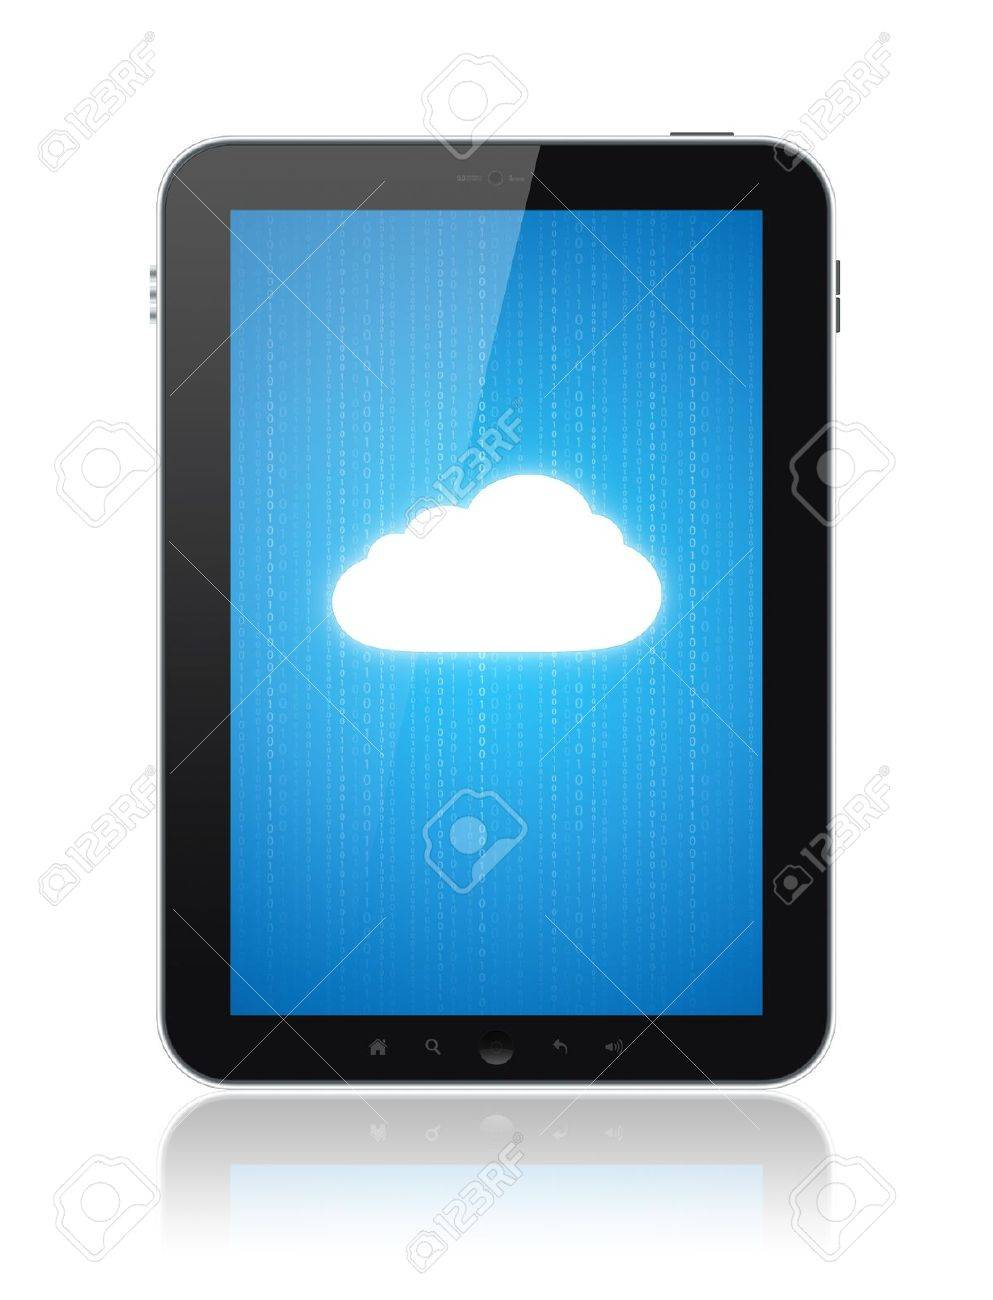 Cloud computing connection on digital tablet pc. Conceptual image. Isolated on white. Stock Photo - 12750890